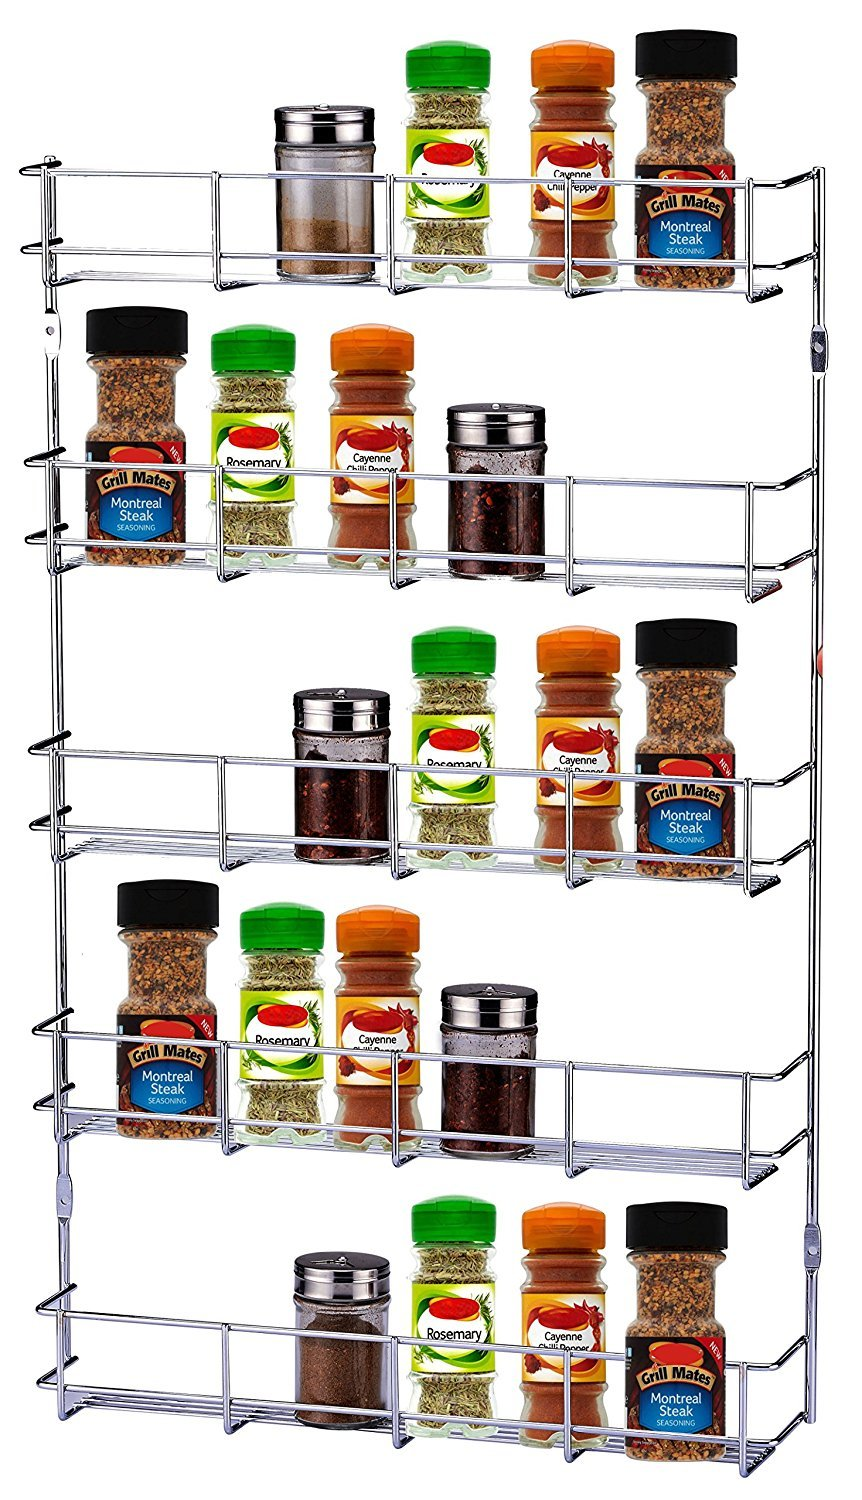 CookSpace (TM) Spice Rack (1 Tier)